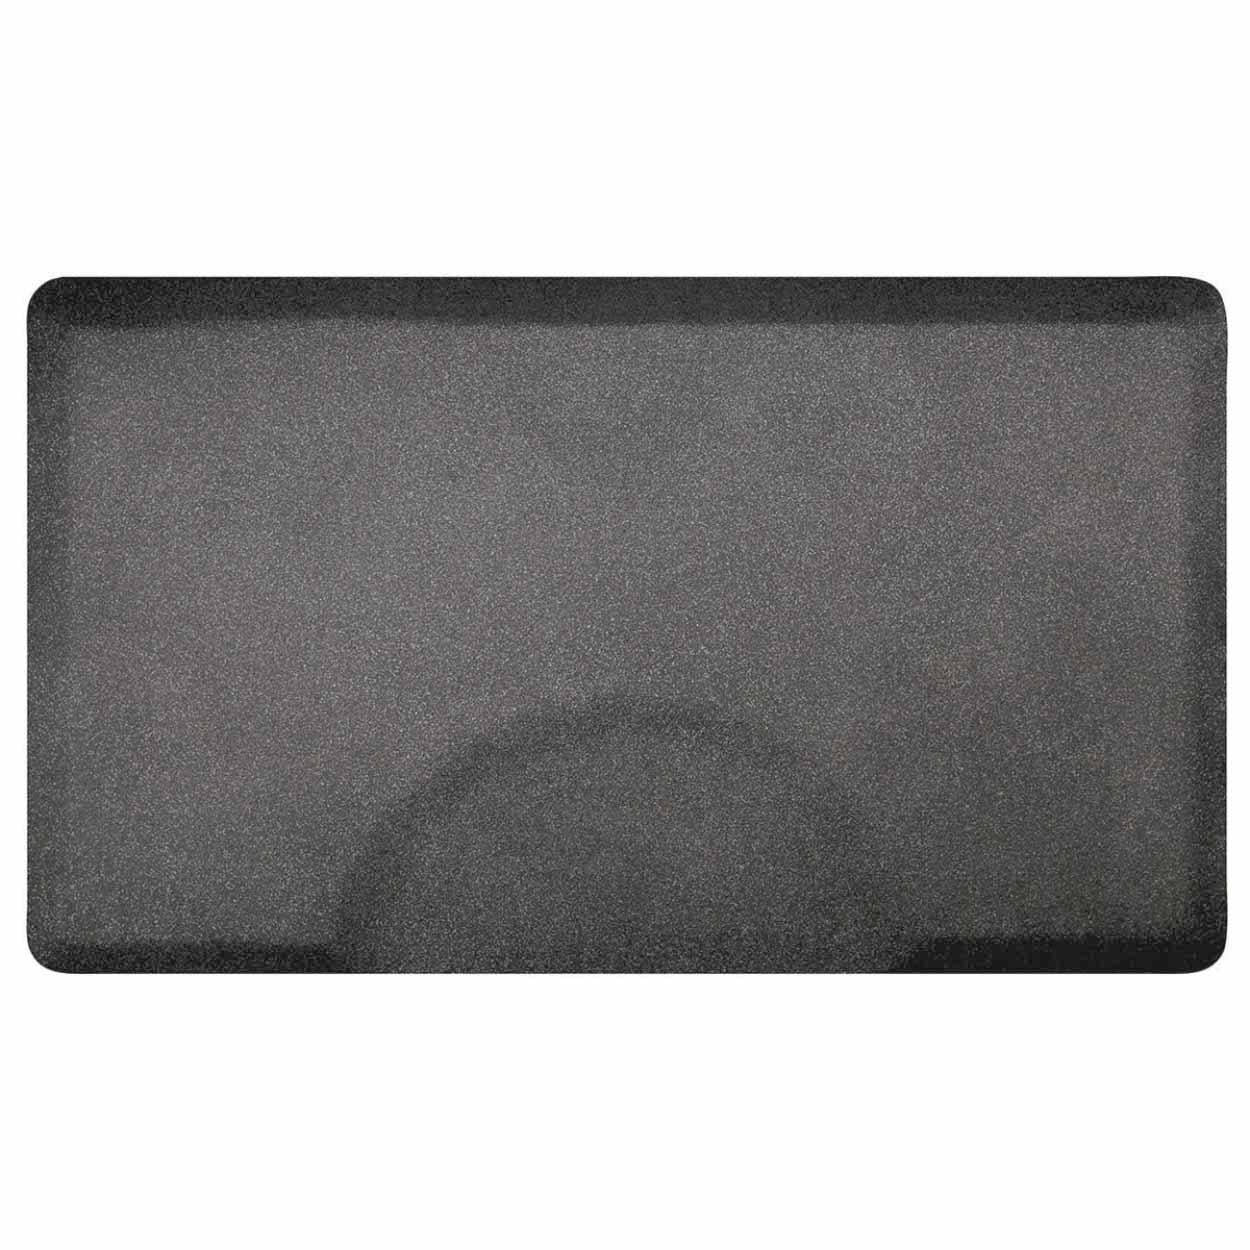 Granite Rectangle Anti-Fatigue Salon Mat in Two Sizes alternative product image 1